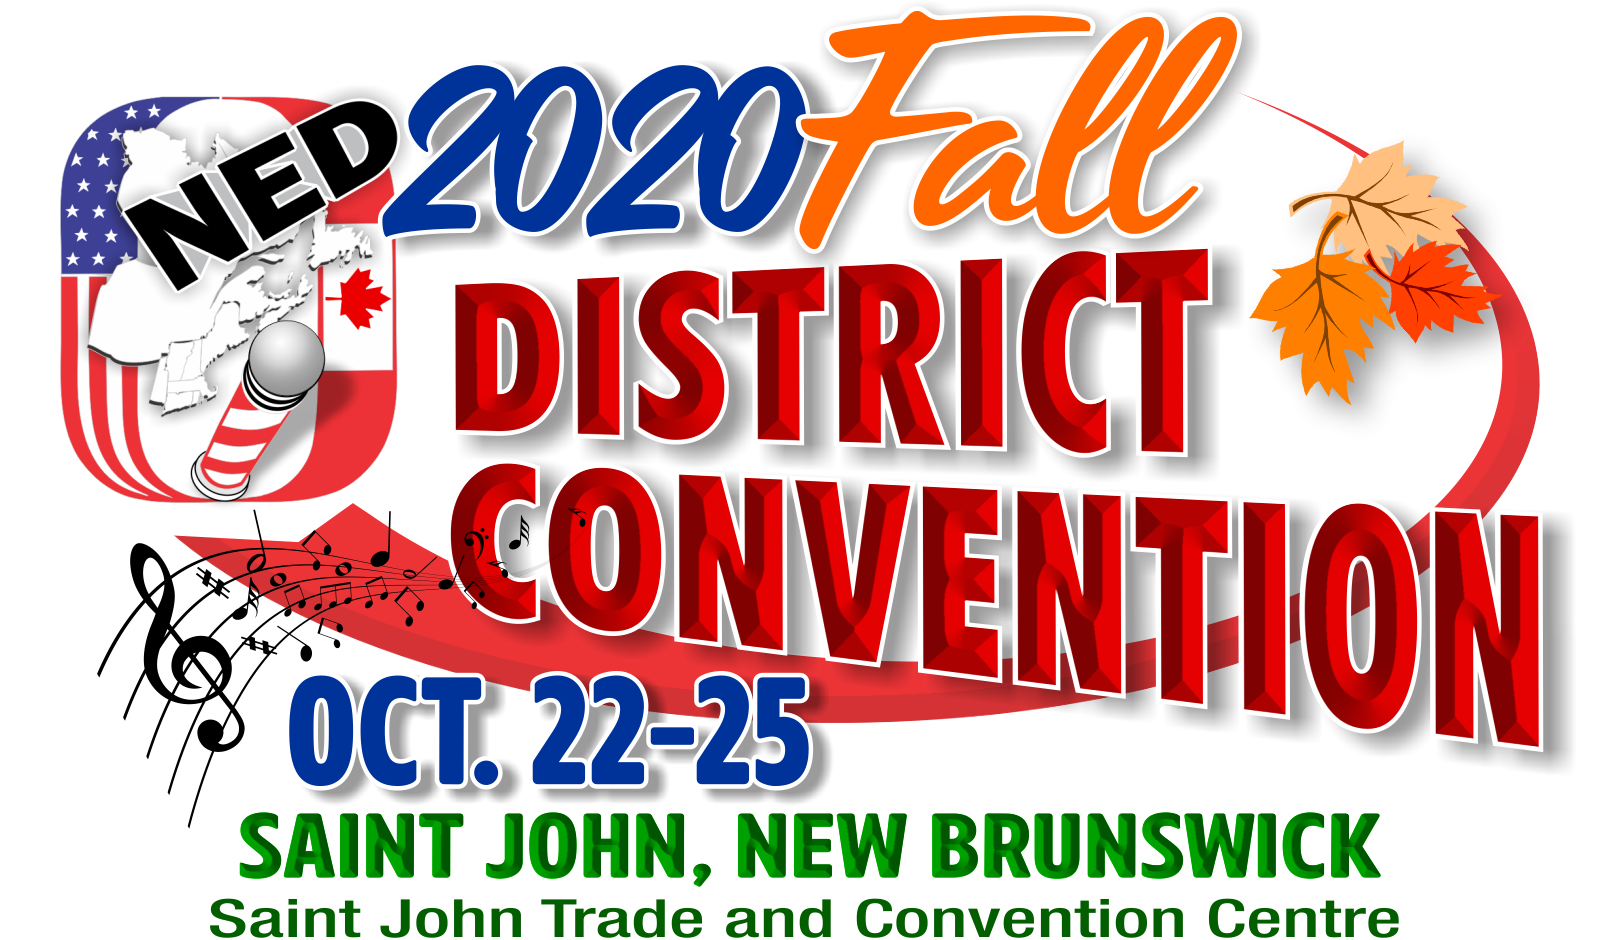 2020-NED-FALL-DistConvLogo-working-v1.png